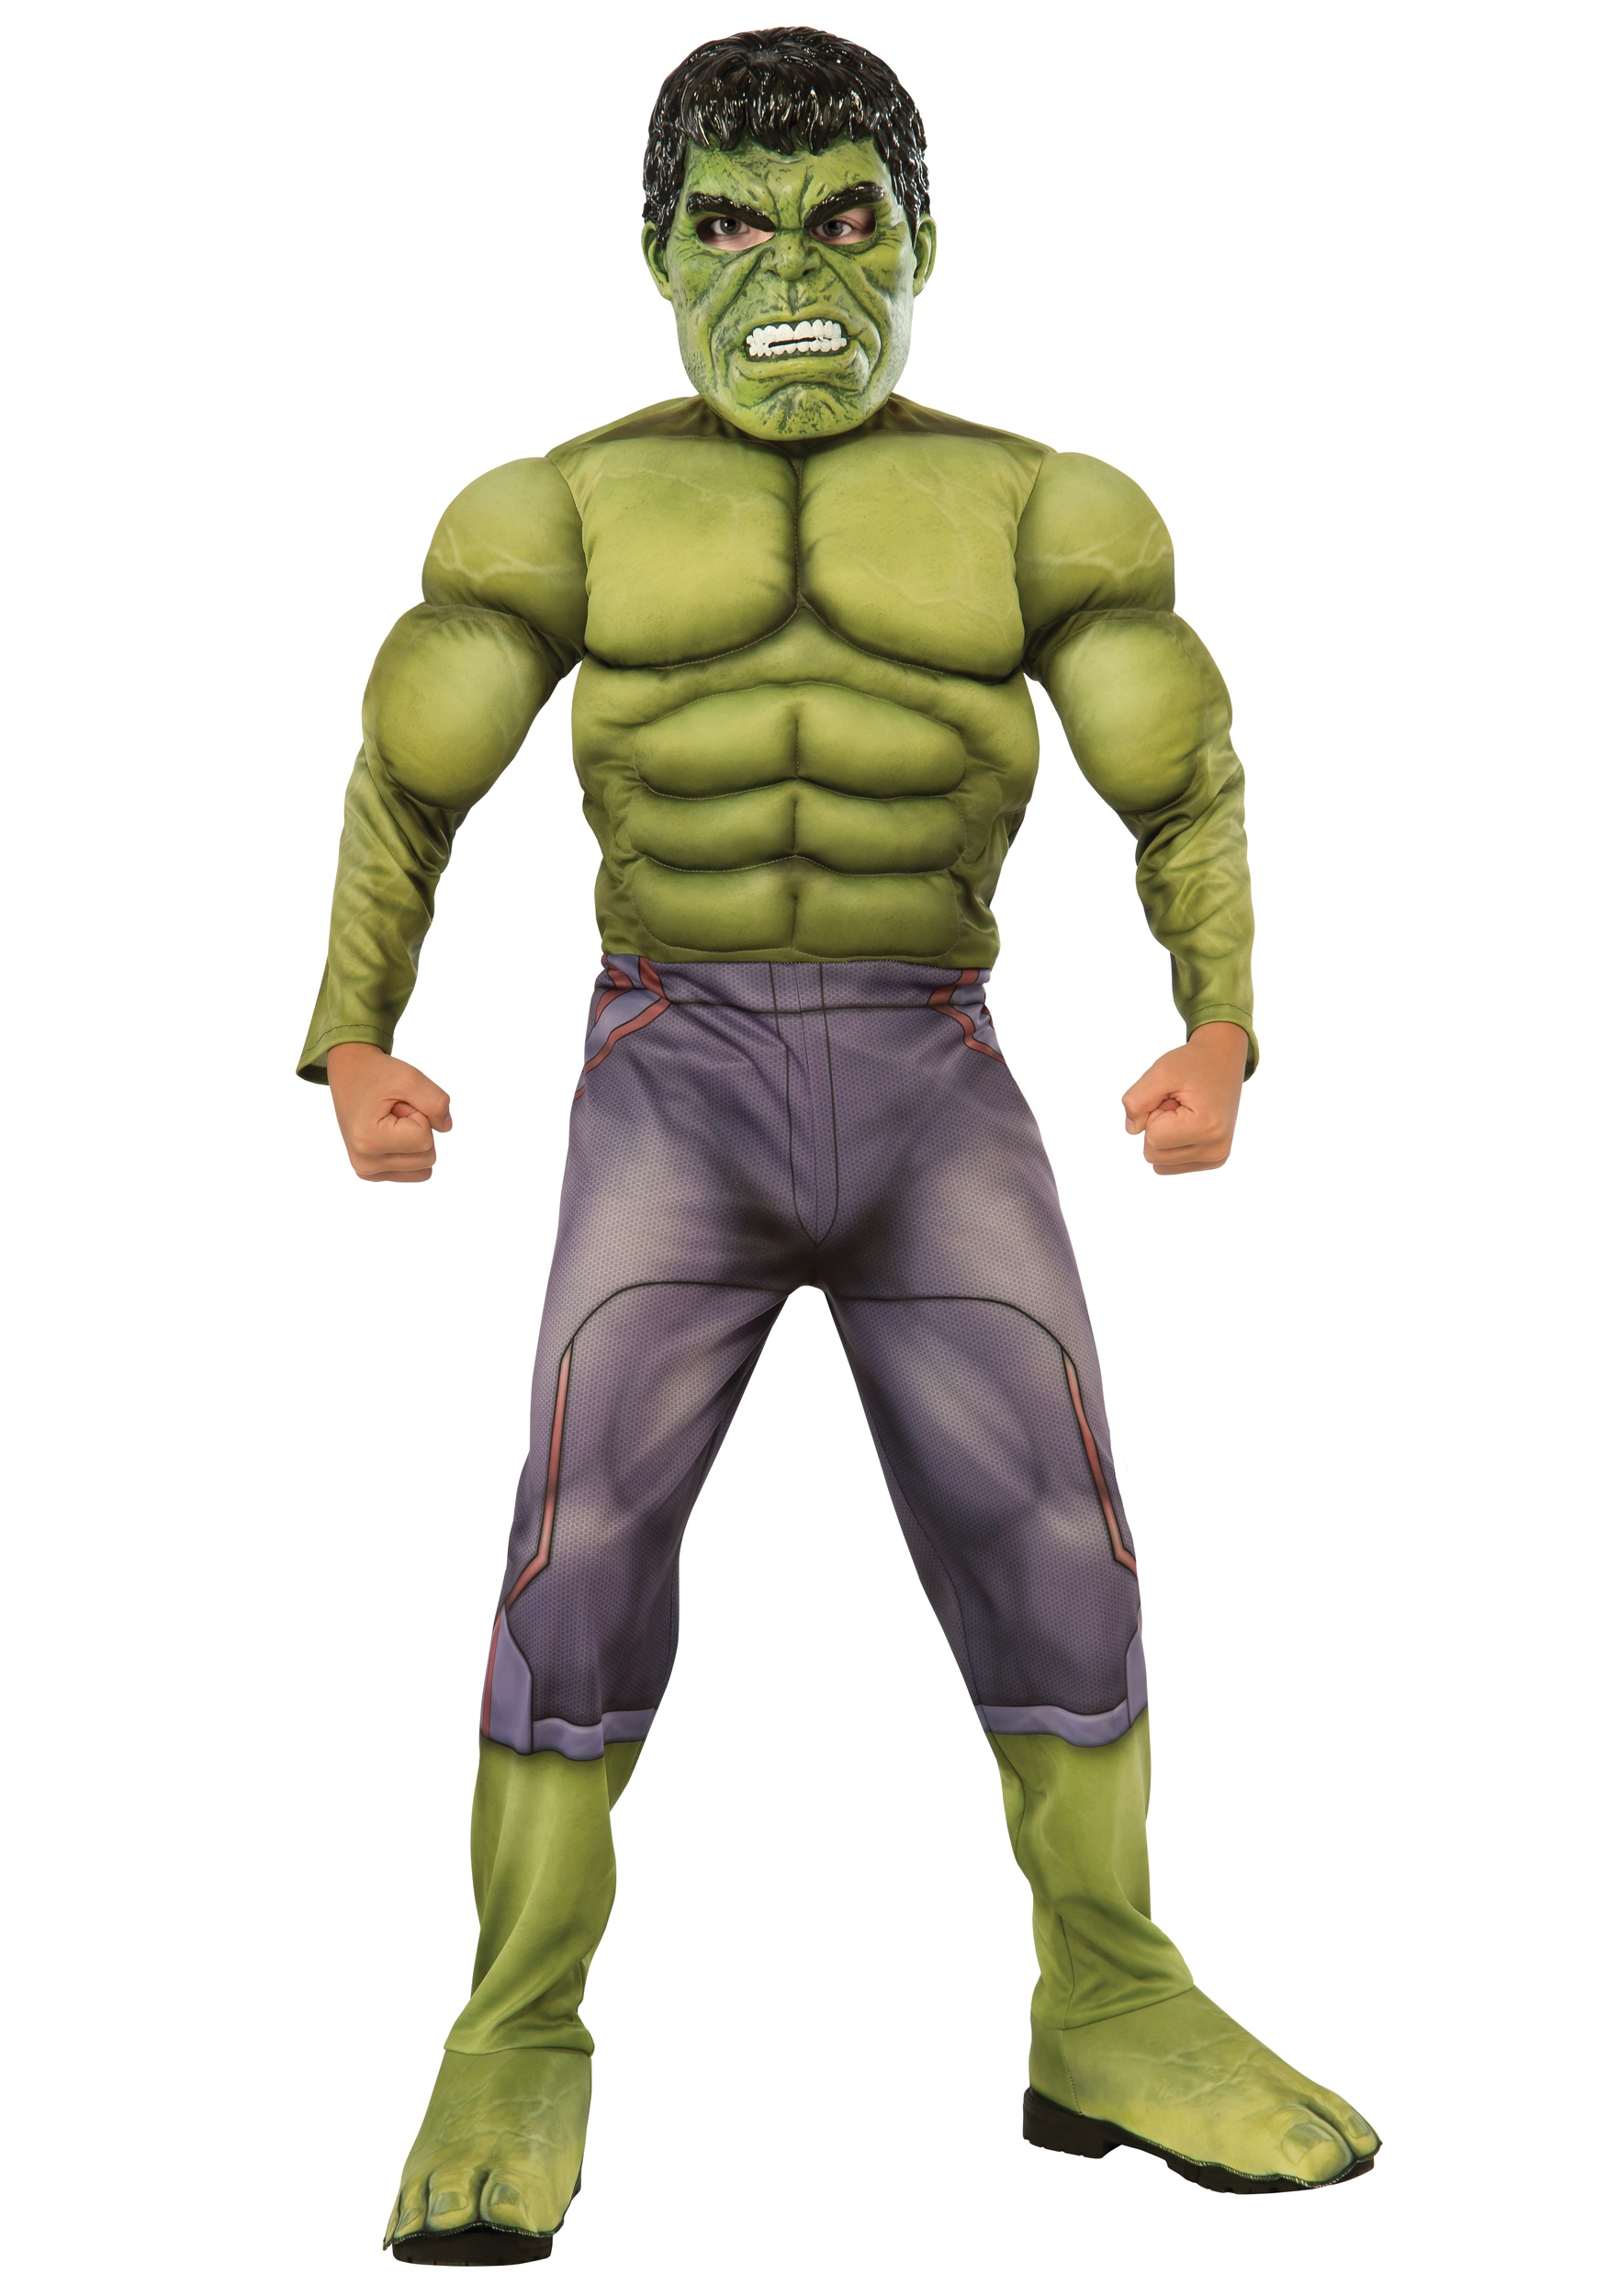 Incredible Hulk Costumes - HalloweenCostumes.com